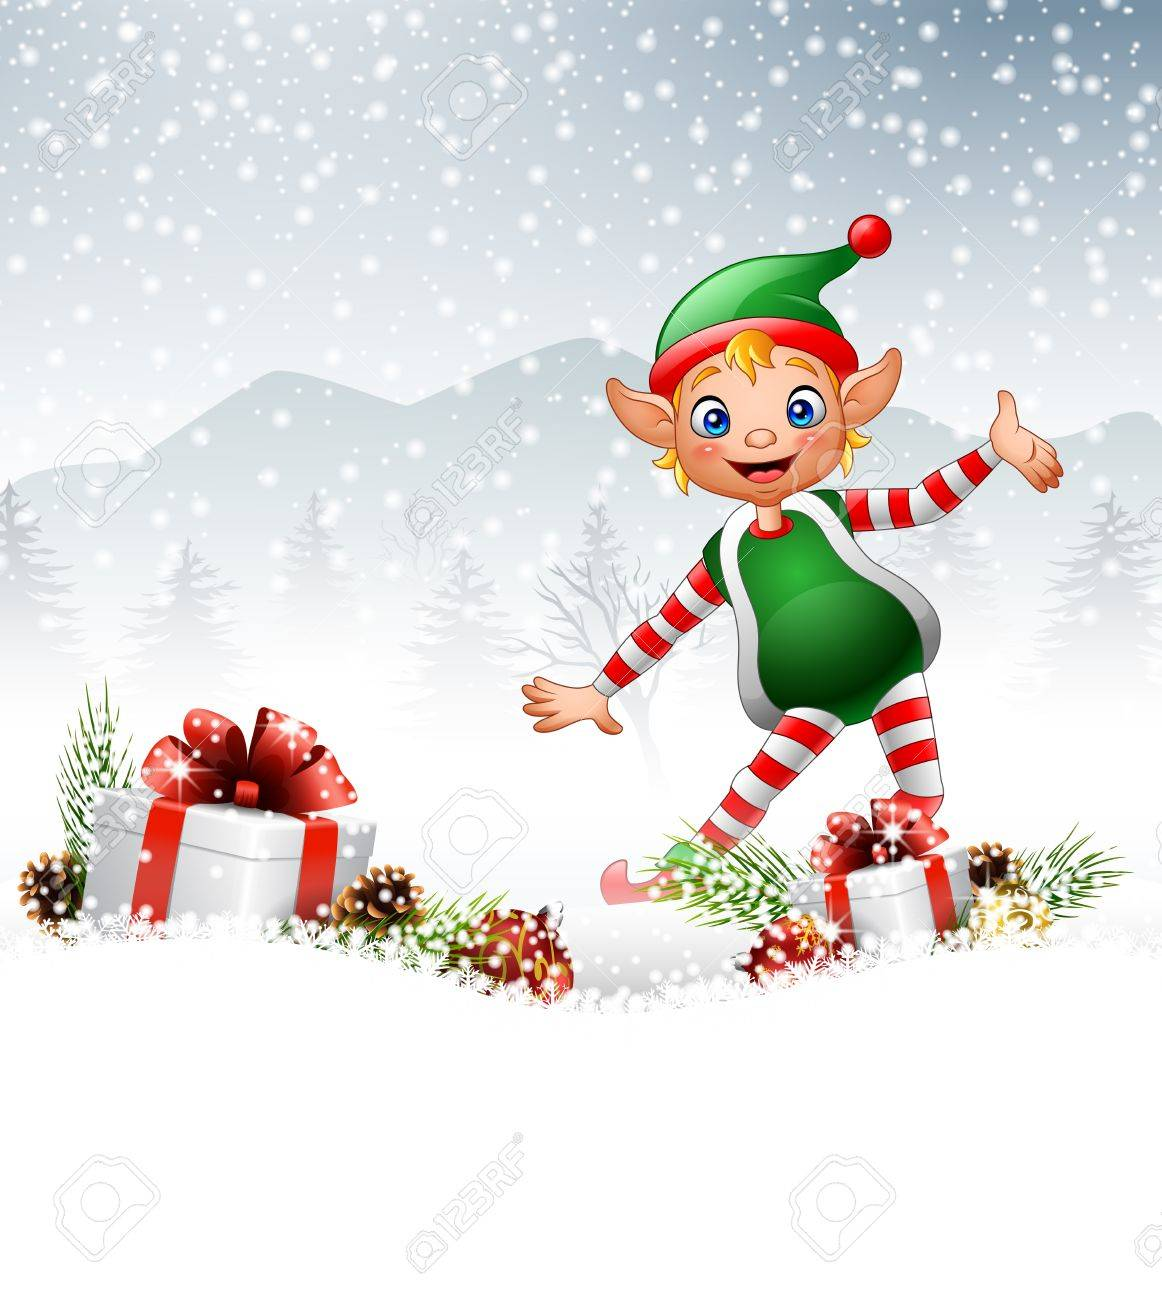 Illustration Of Christmas Background With Happy Elf Royalty Free ...